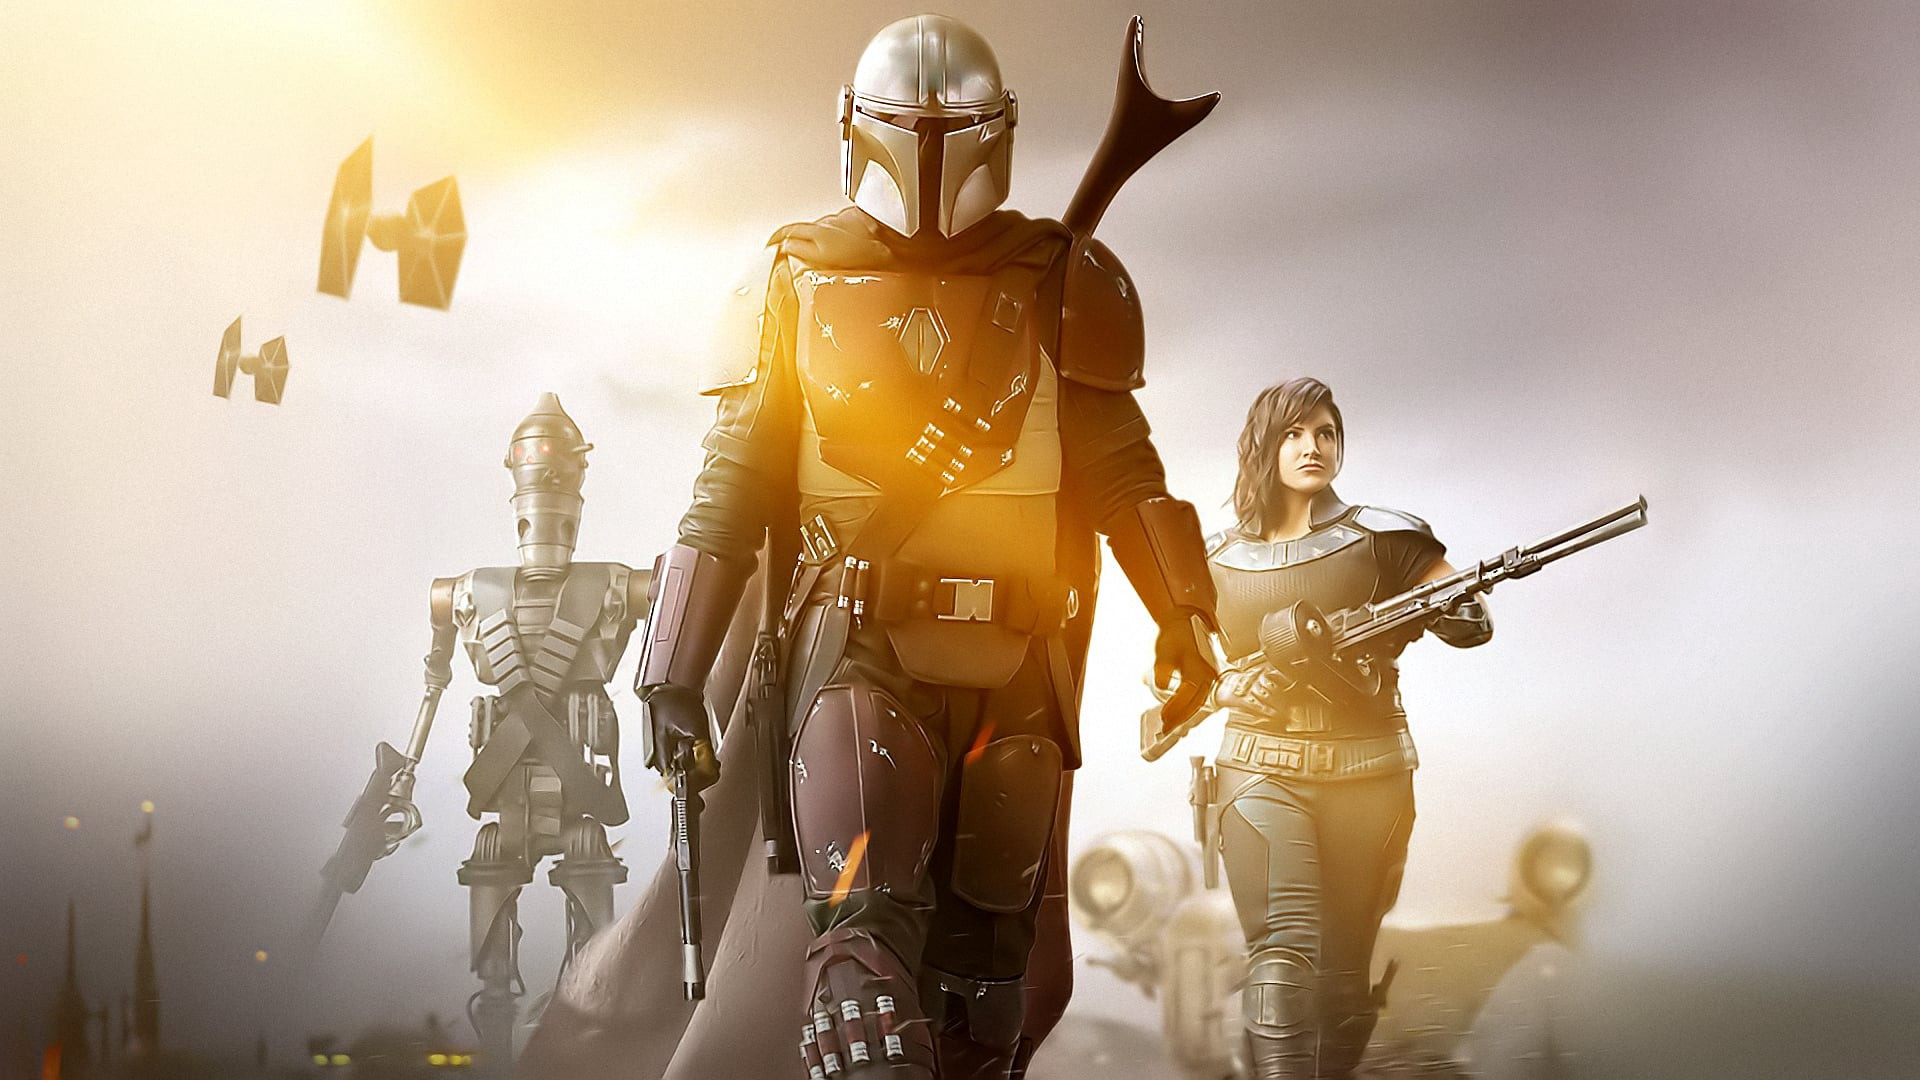 The Mandalorian Season 2 Cast and Plot Details